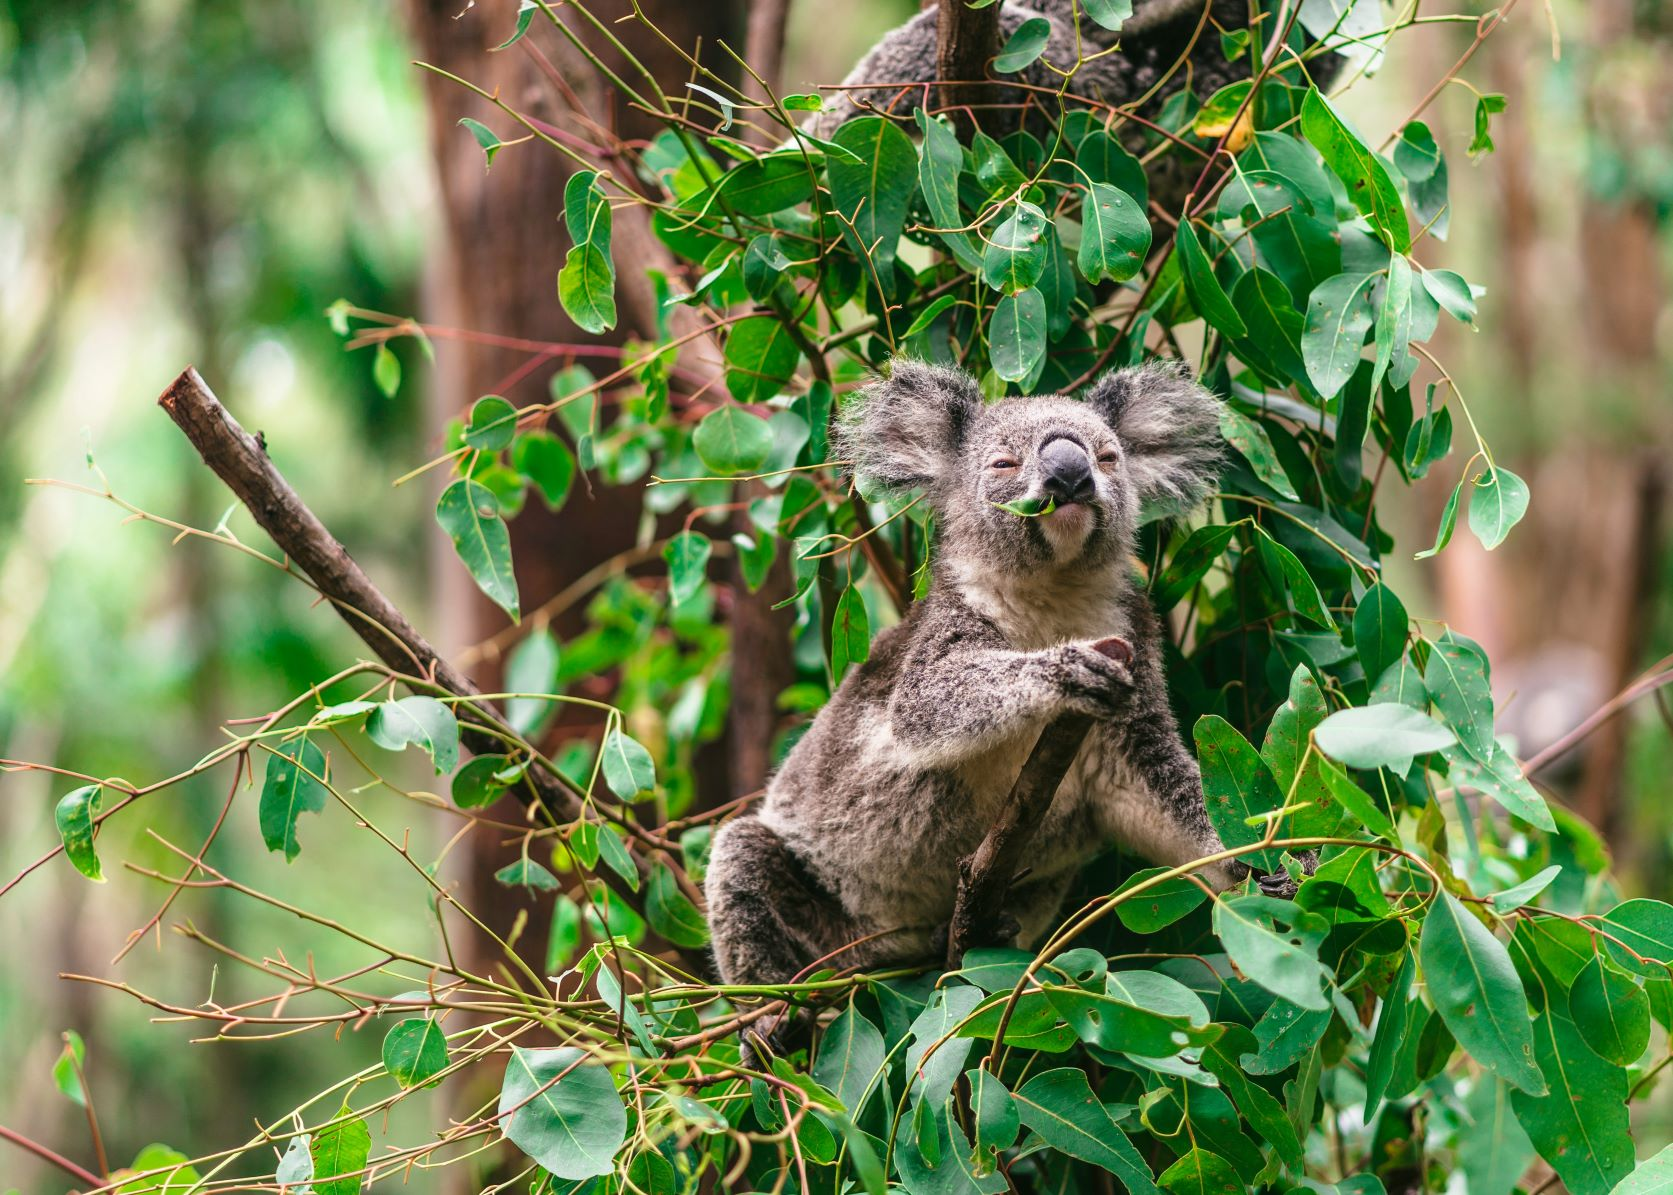 A koala sits in a tree eating leaves